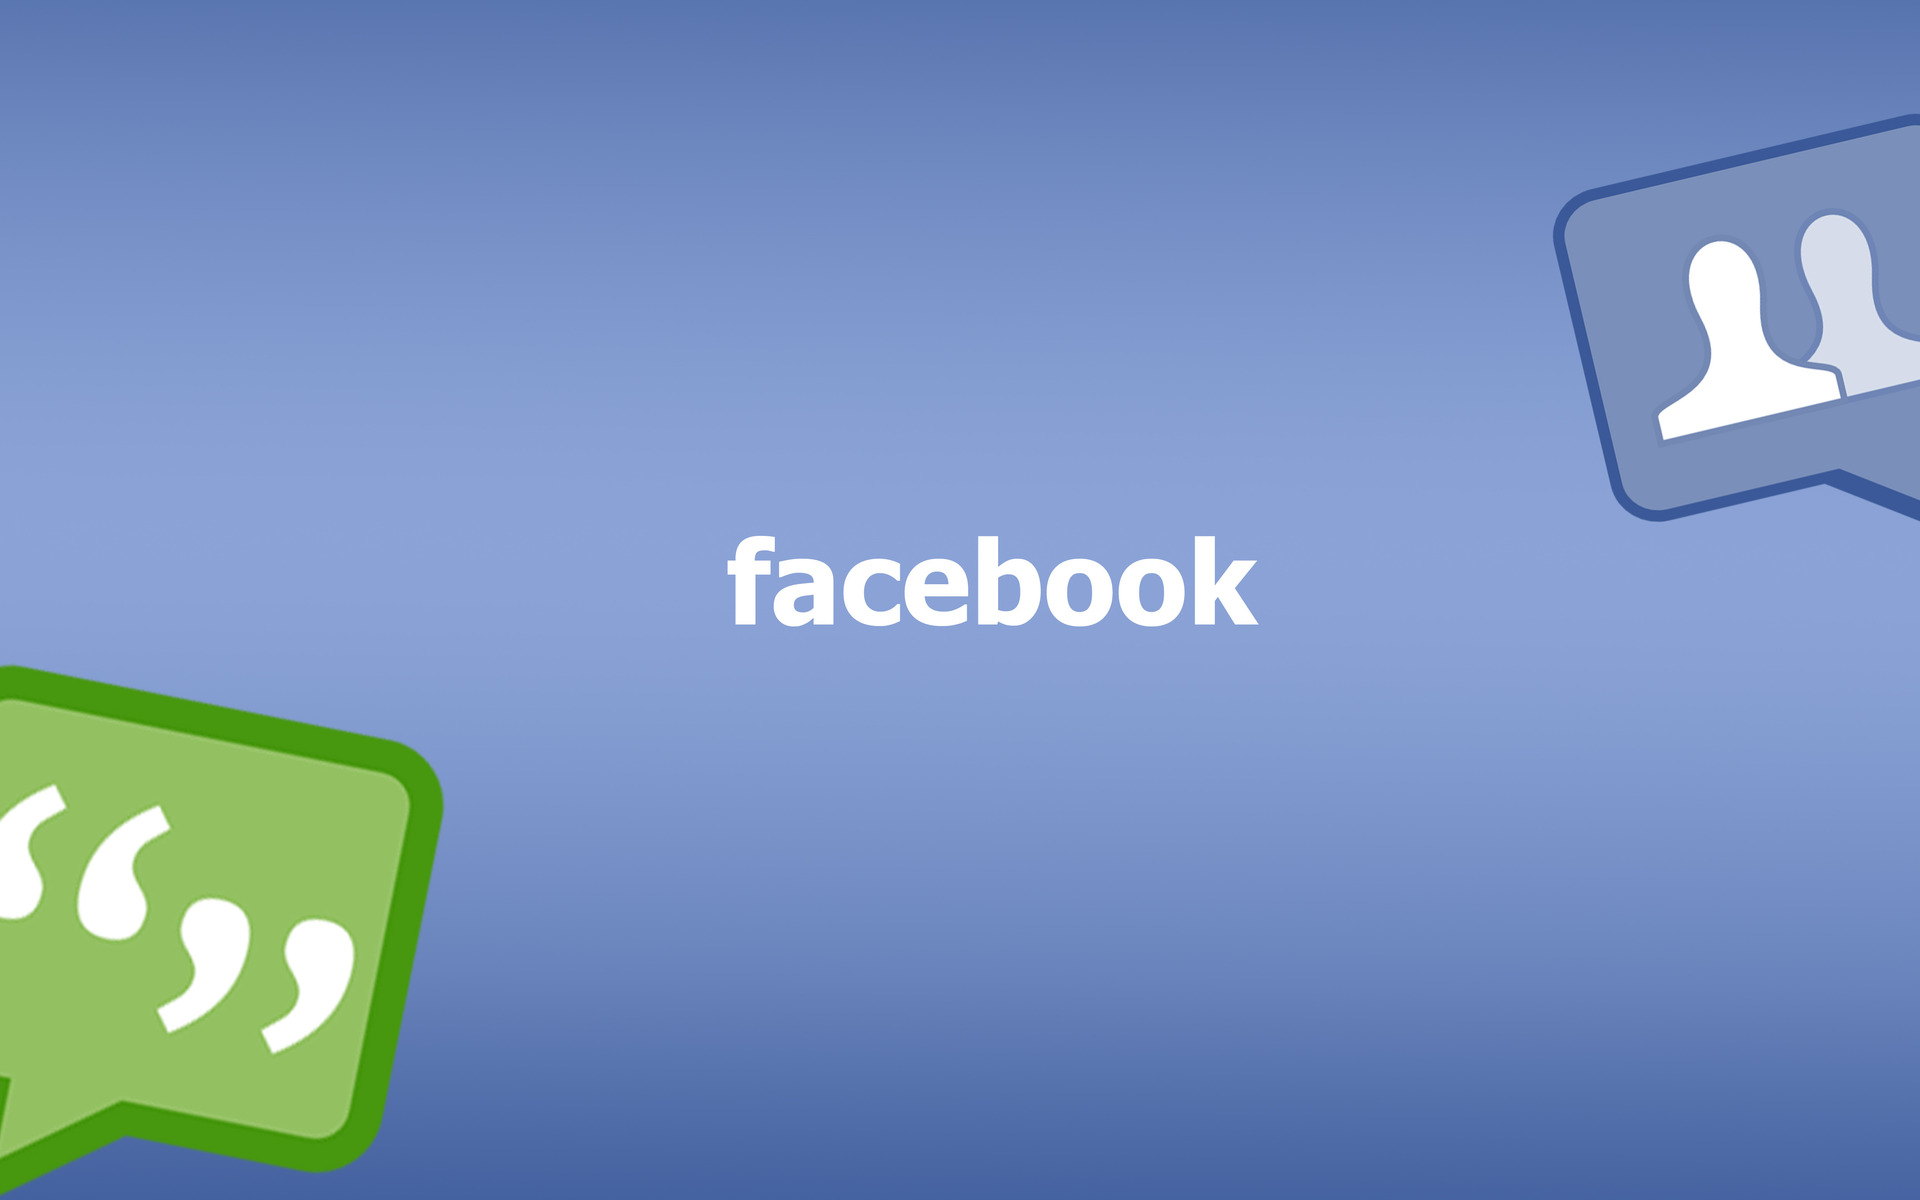 facebook wallpaper designs graphics picture creative wallpapers 1920x1200